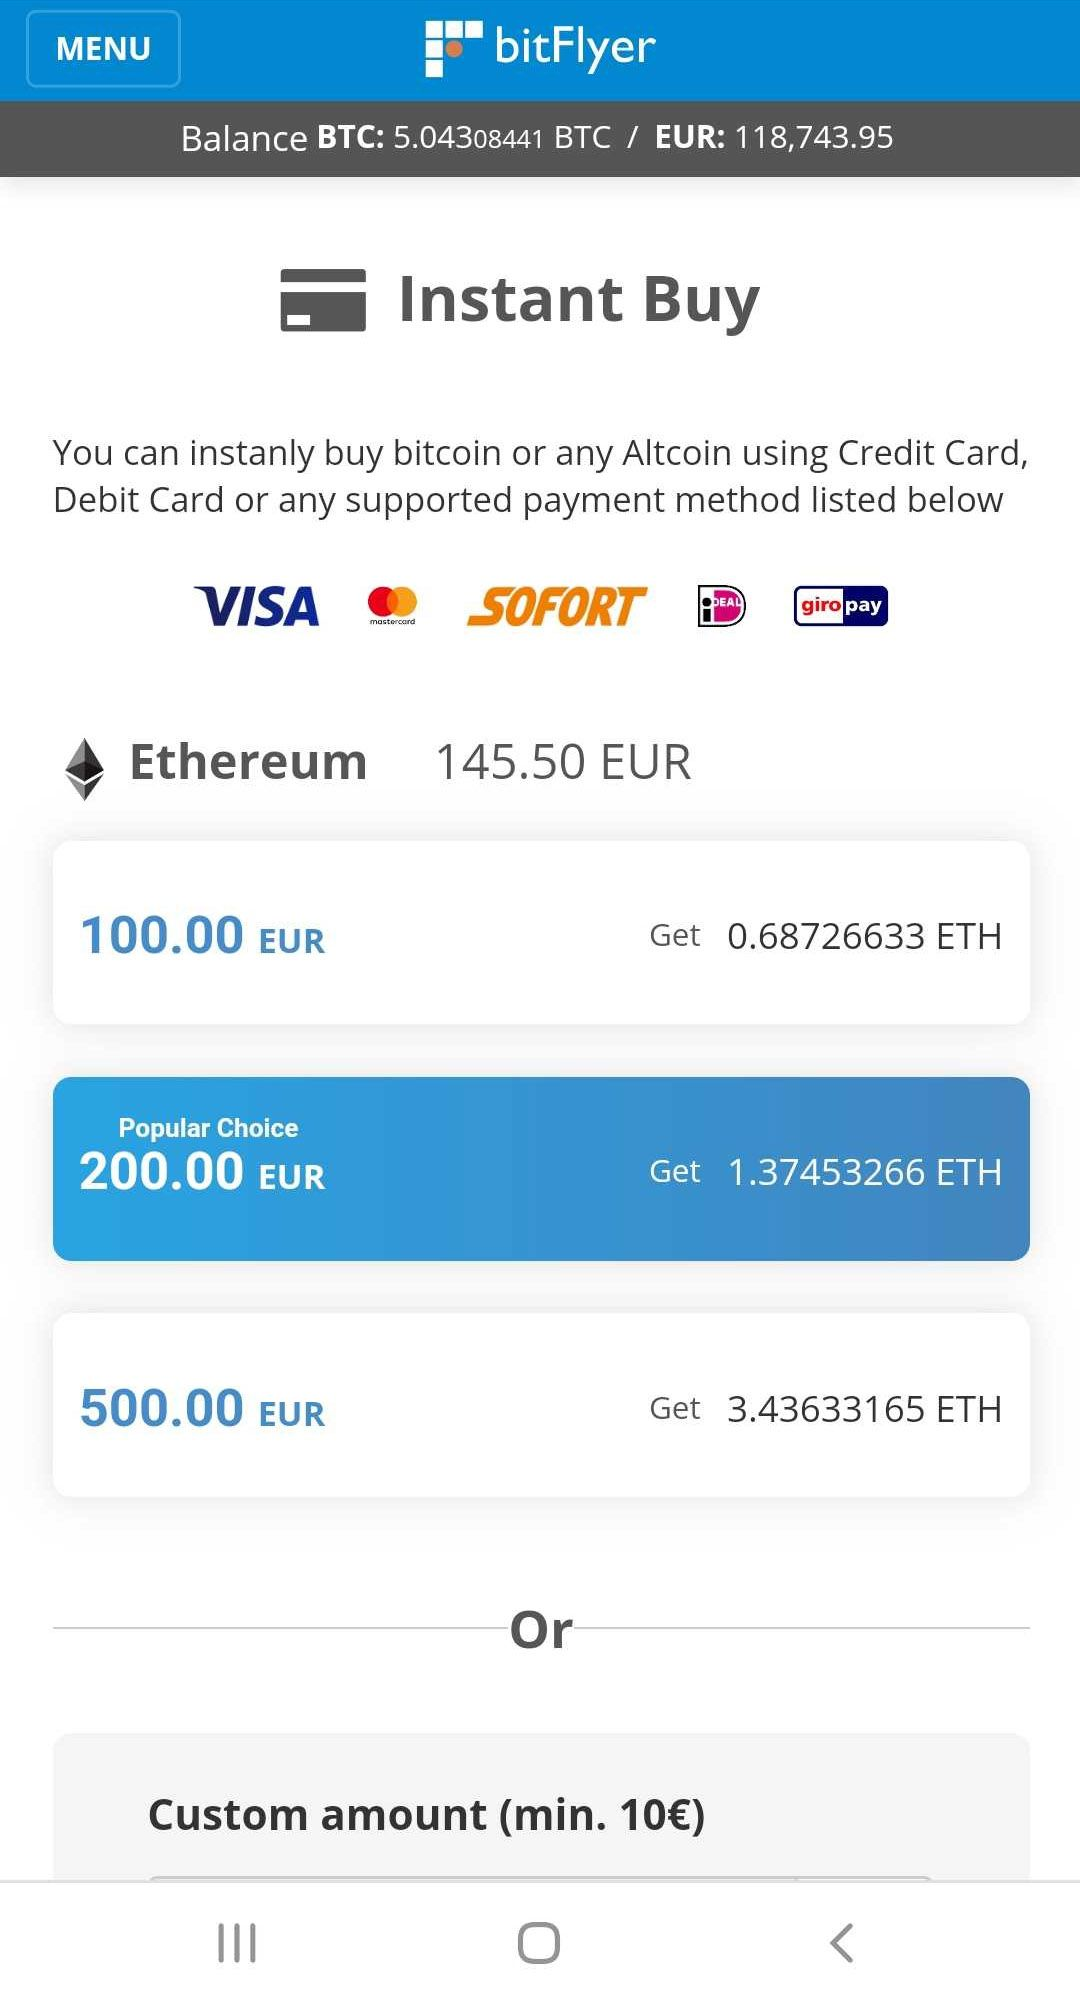 Buy Bitcoin and Altcoins instantly with